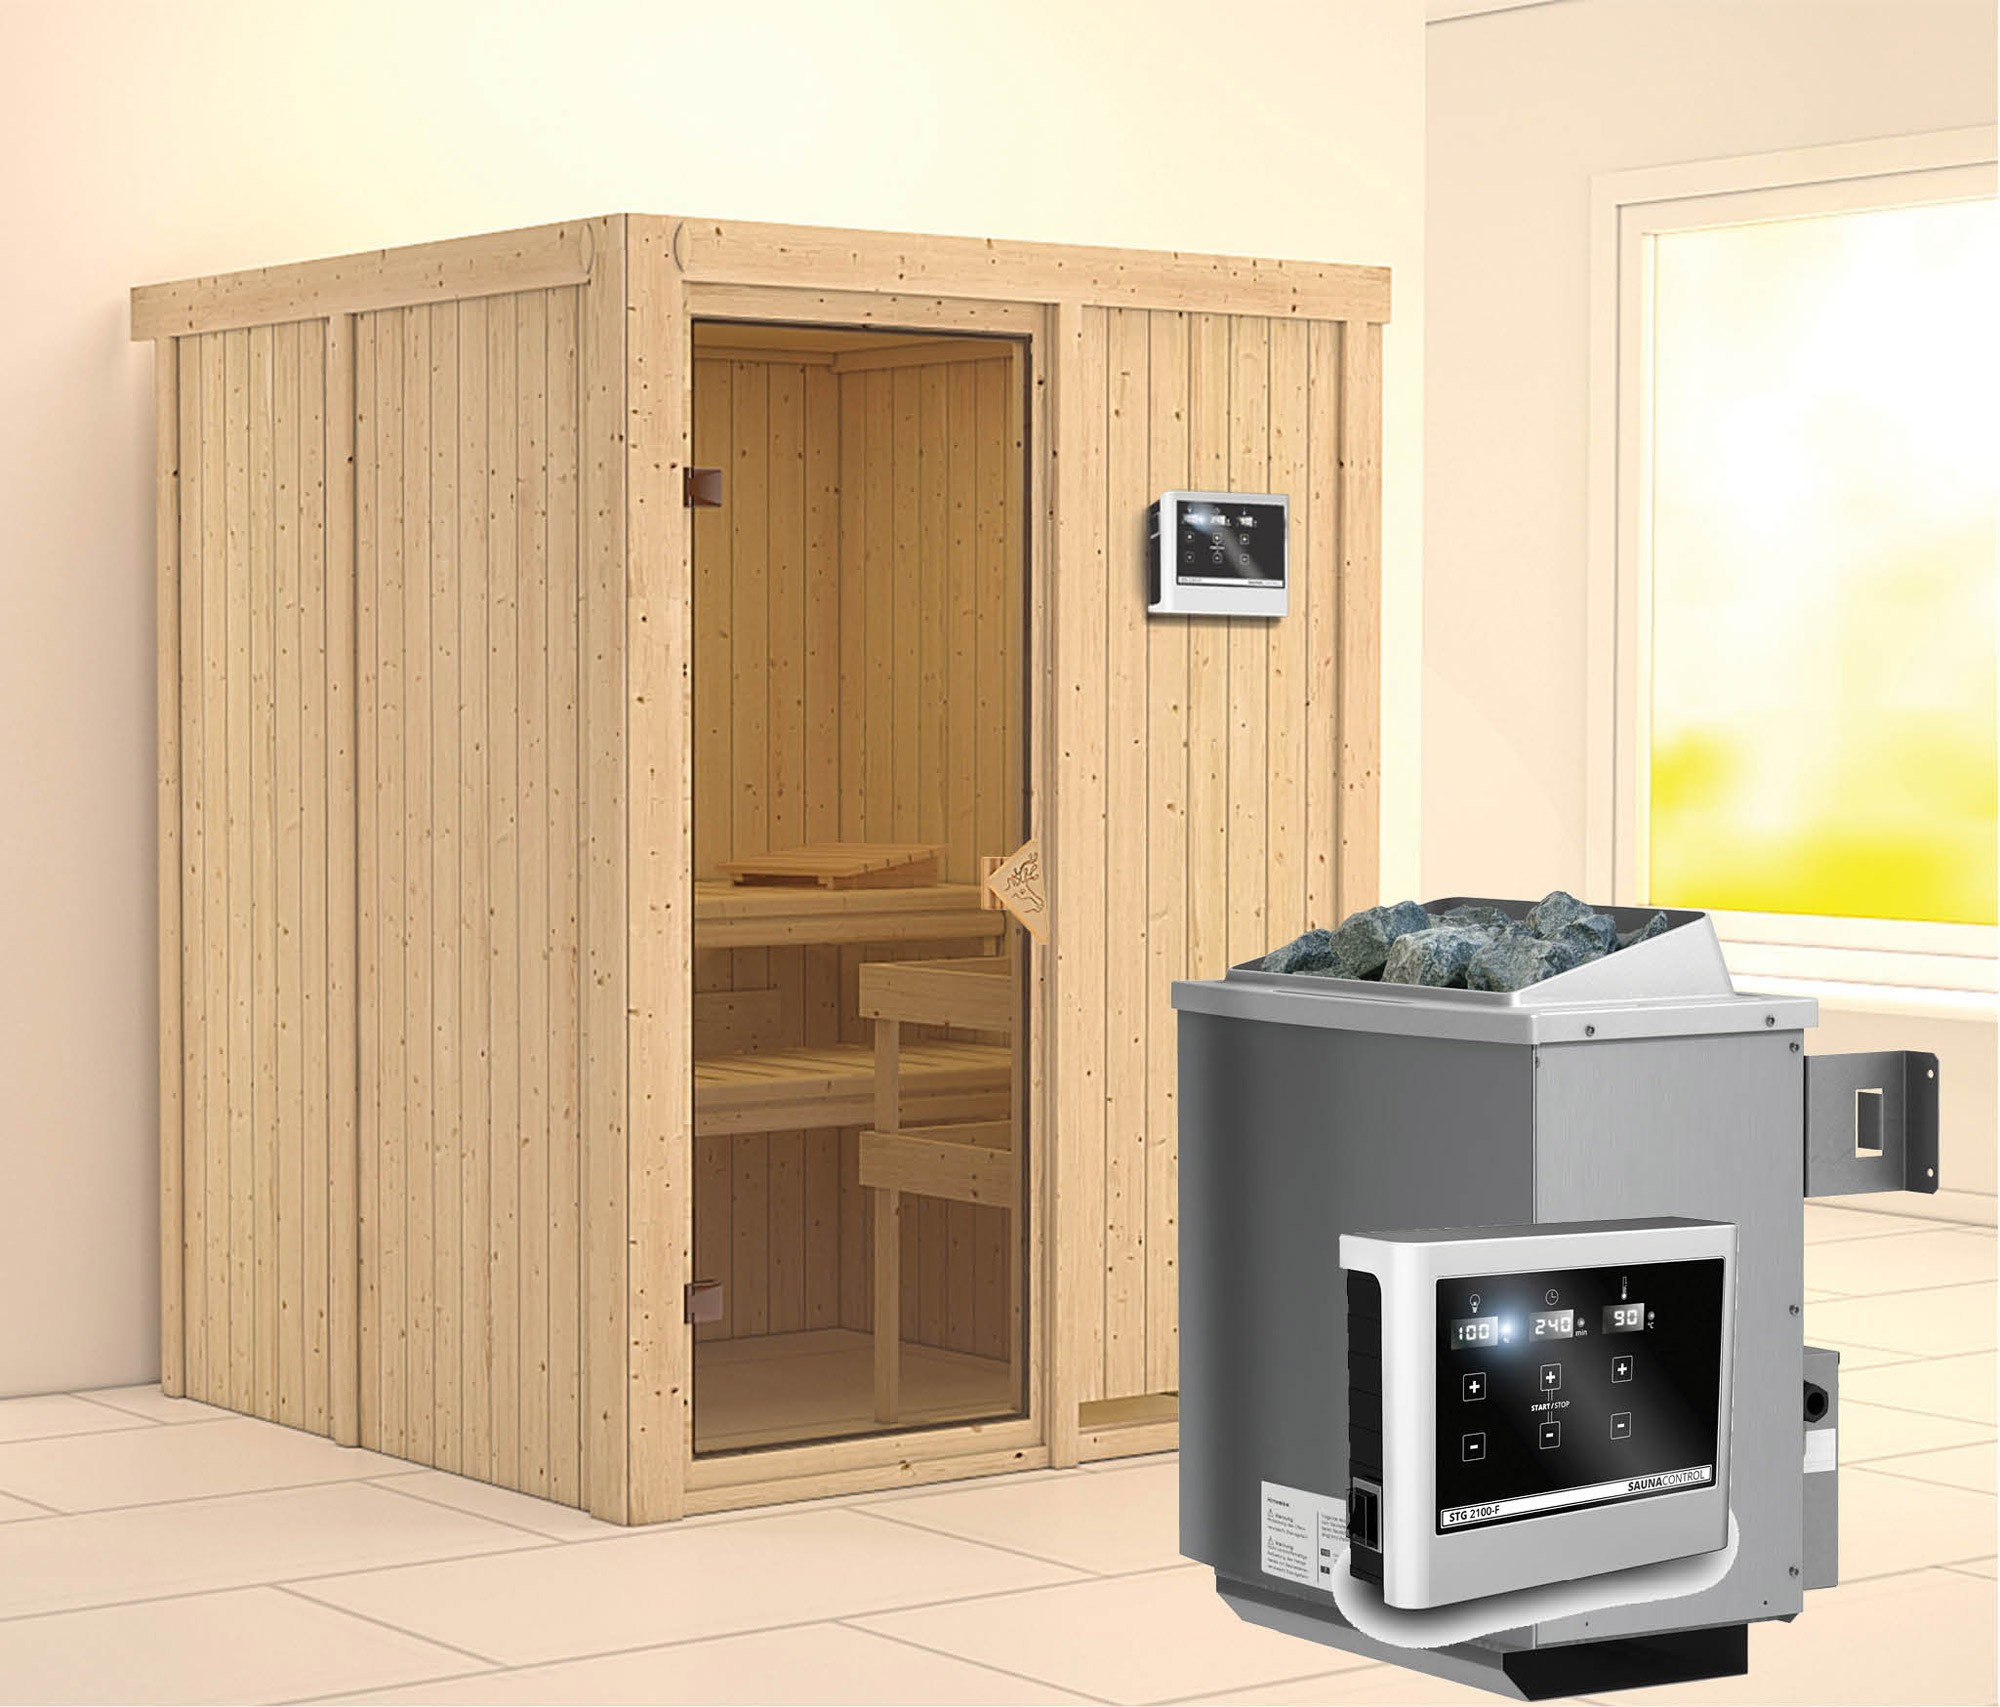 karibu sauna norin 68mm mit ofen 9kw extern classic t r bild 1. Black Bedroom Furniture Sets. Home Design Ideas